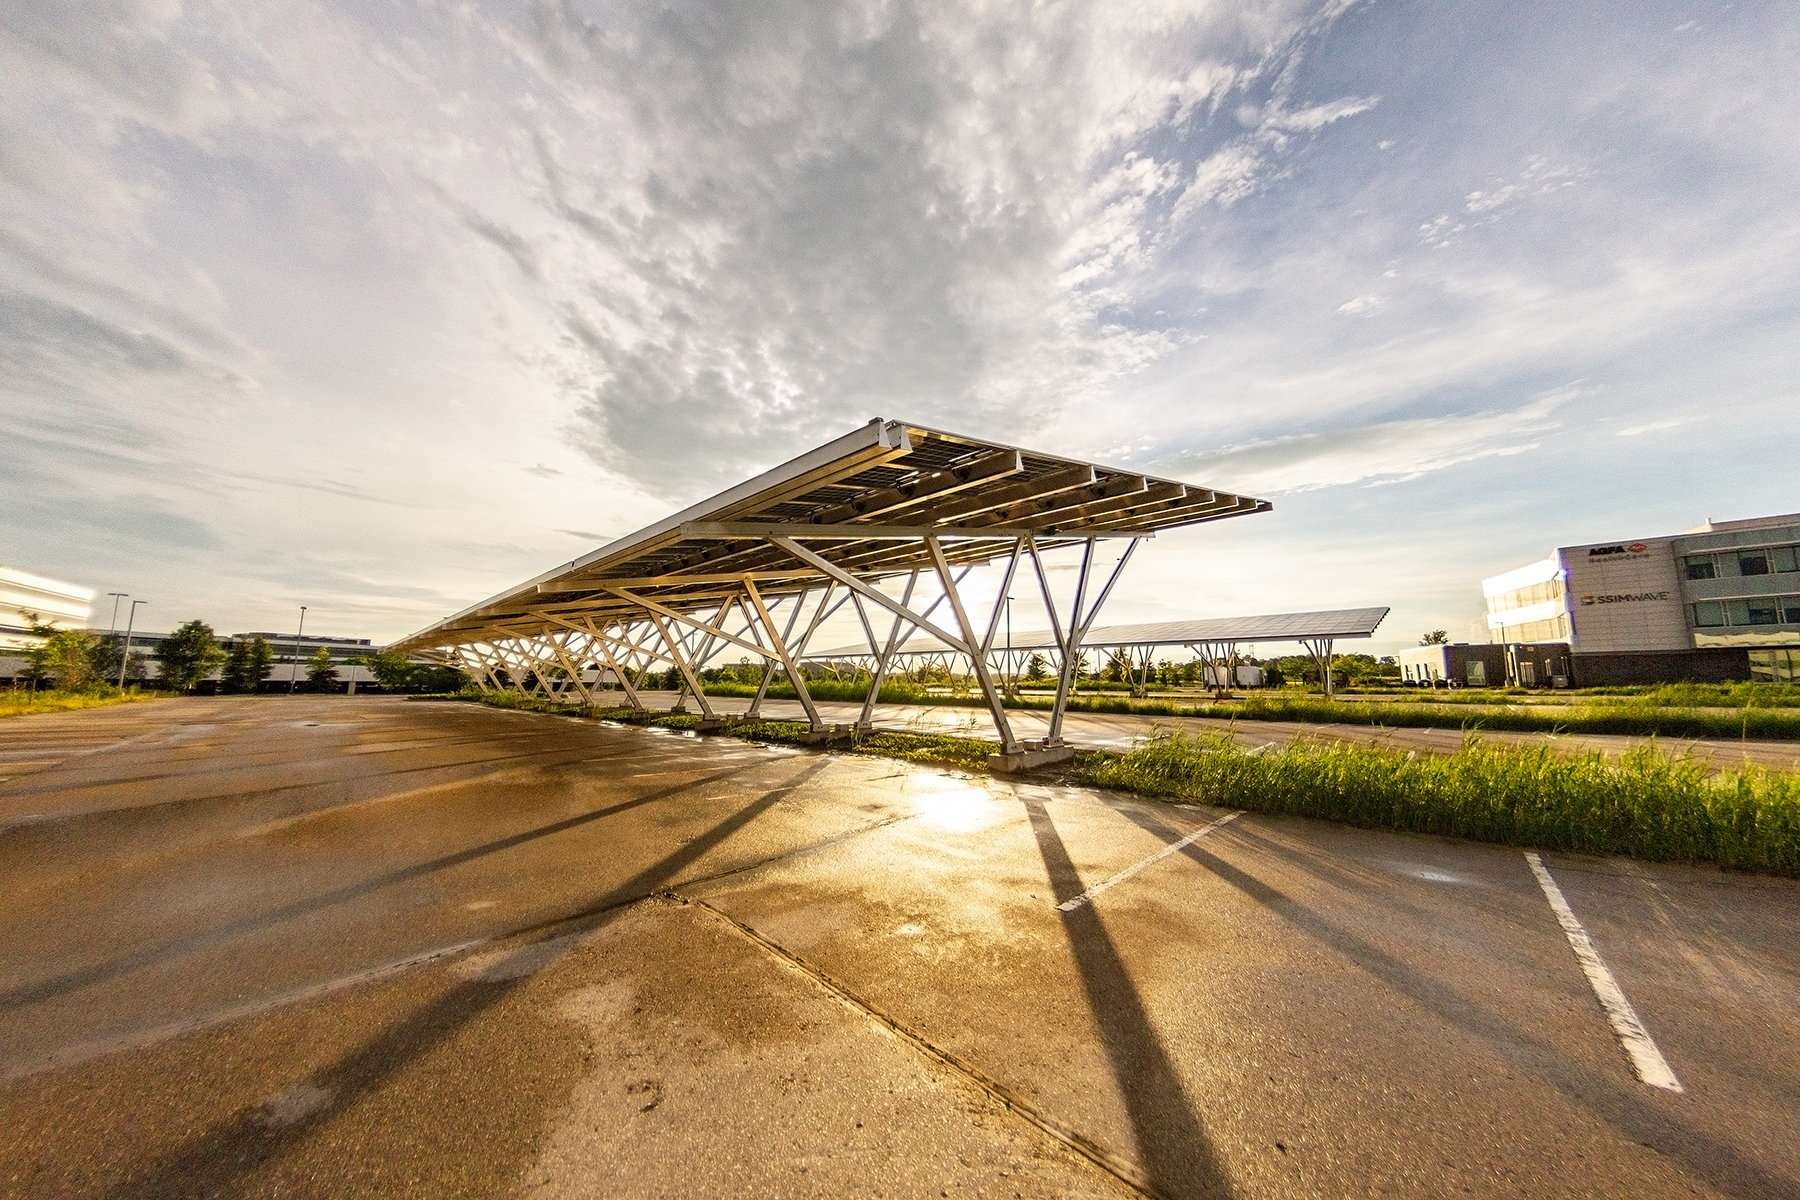 Solar carport canopy, photographed at sunset with dramatic shadows